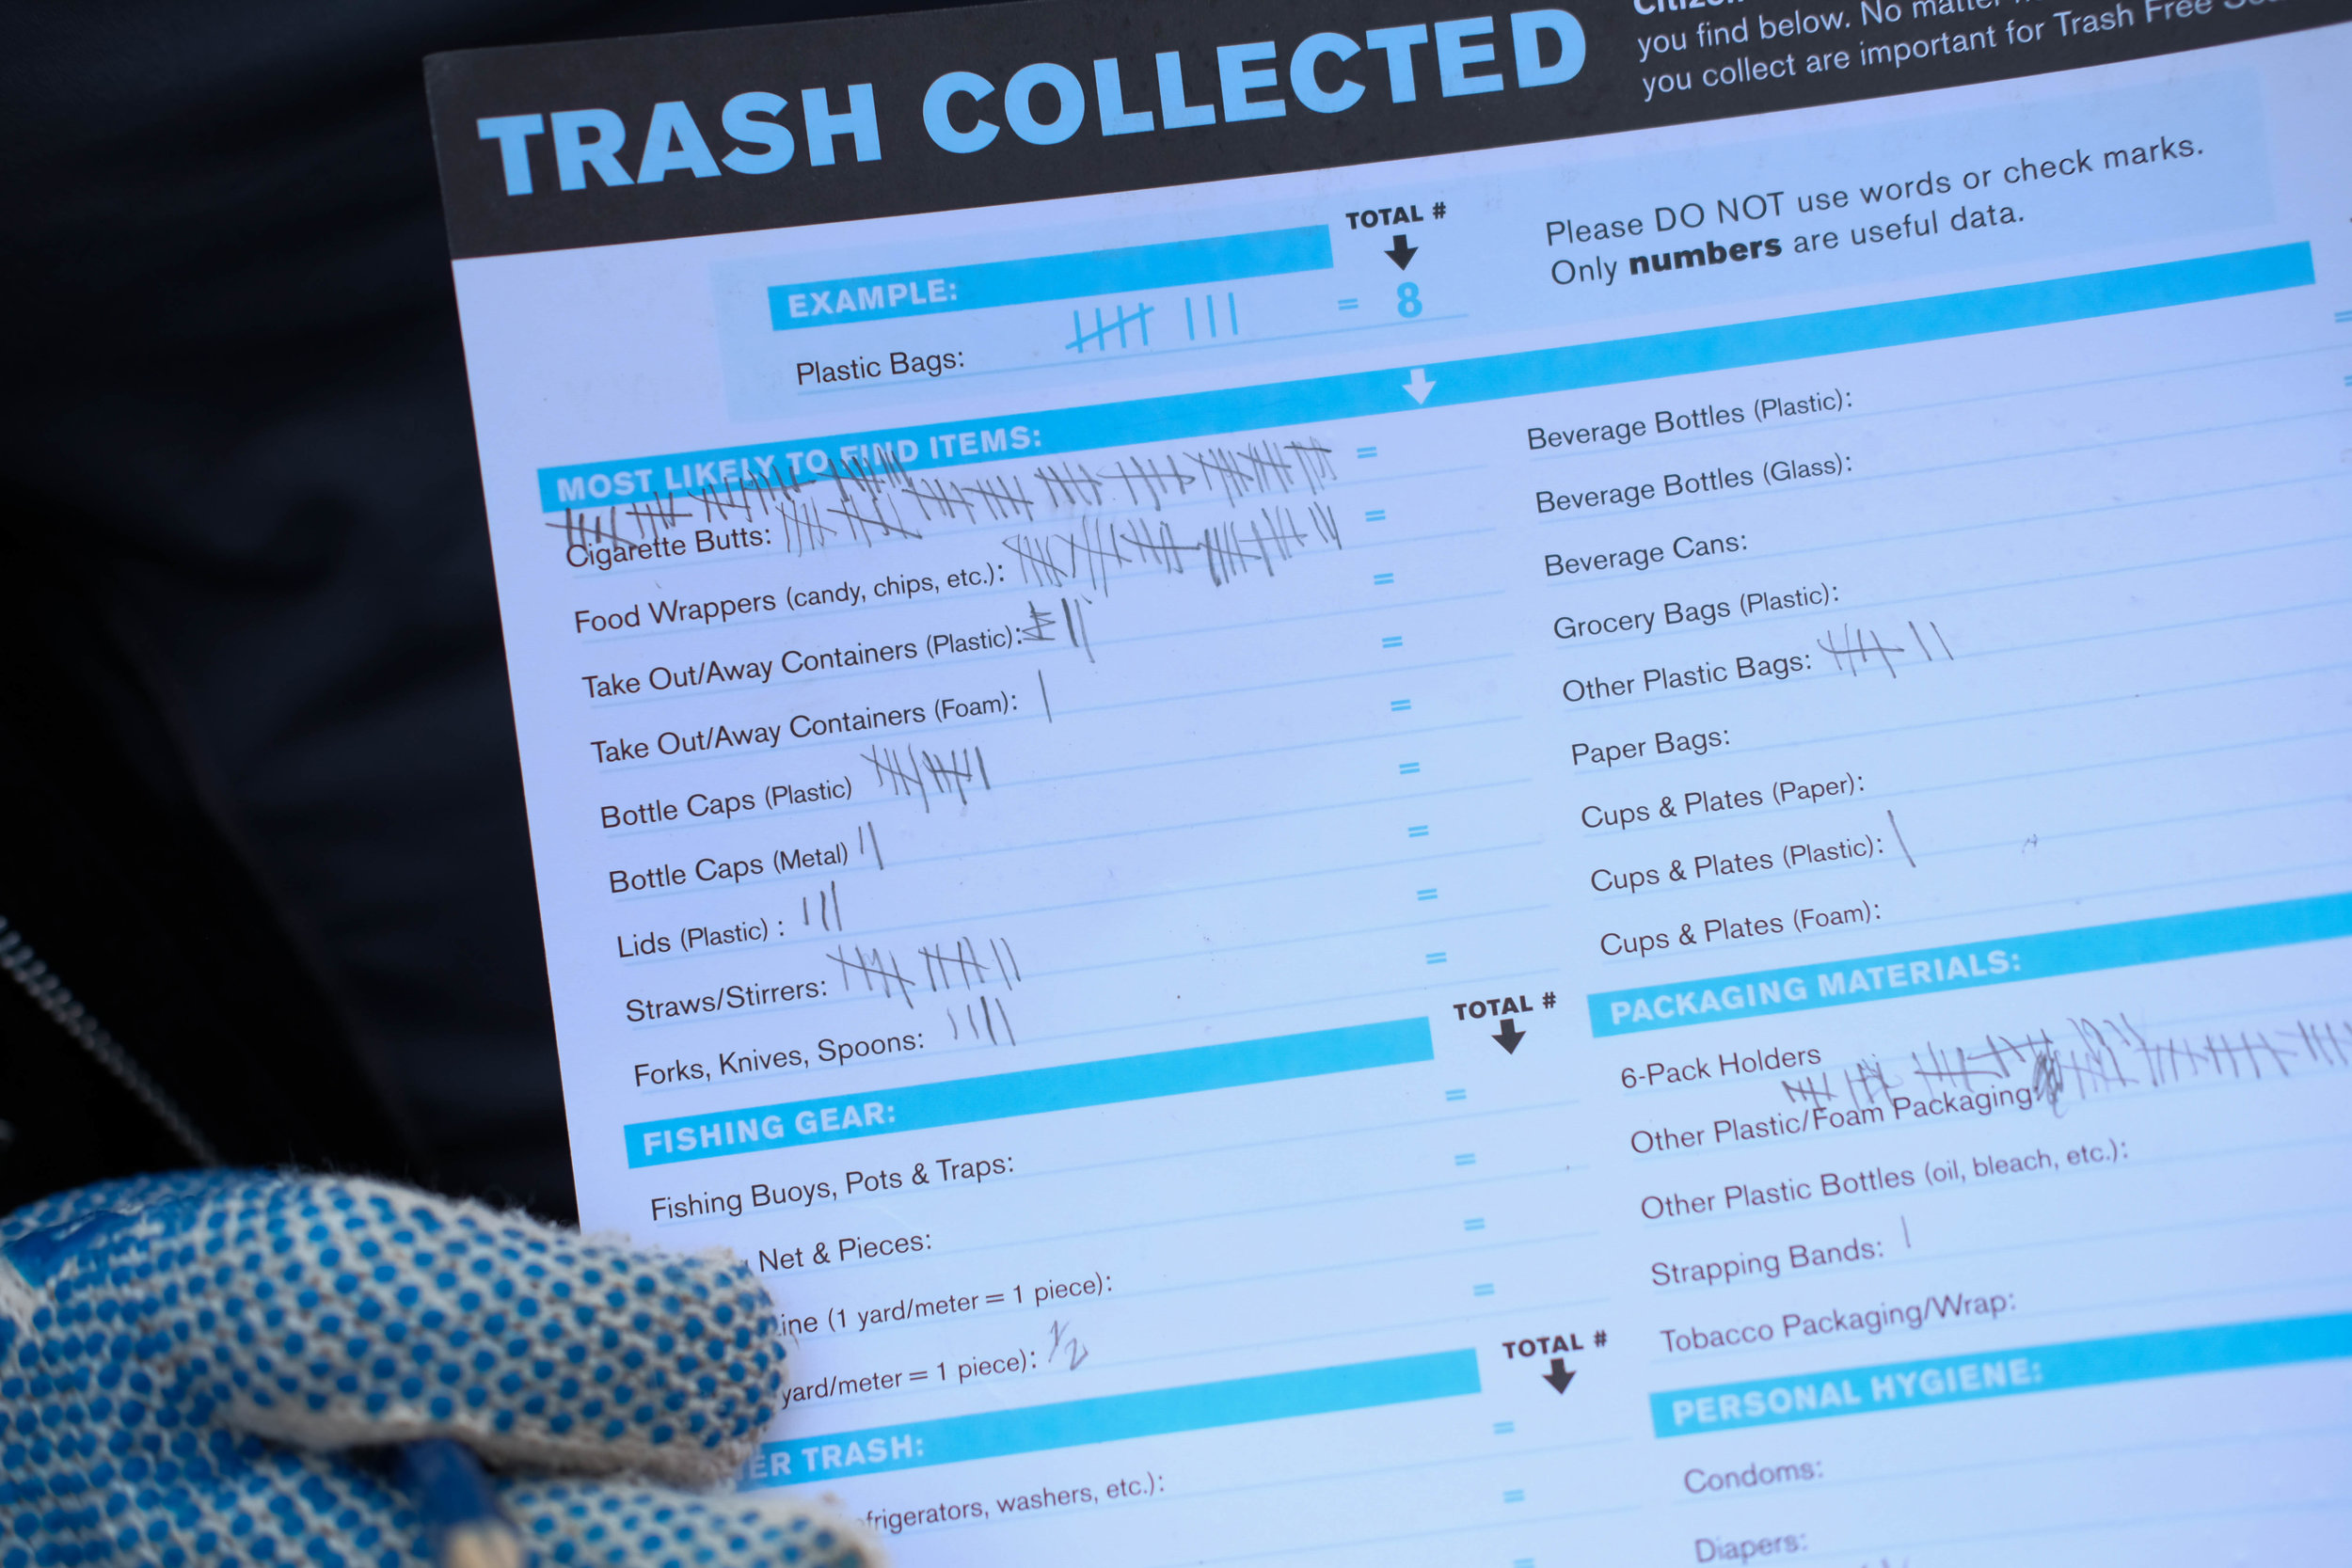 Maria Volkova shows the amoutn of trash collected on her Heal the Bay worksheet in Santa Monica, CALIF on September 15th, 2017. (Jayrol San Jose)